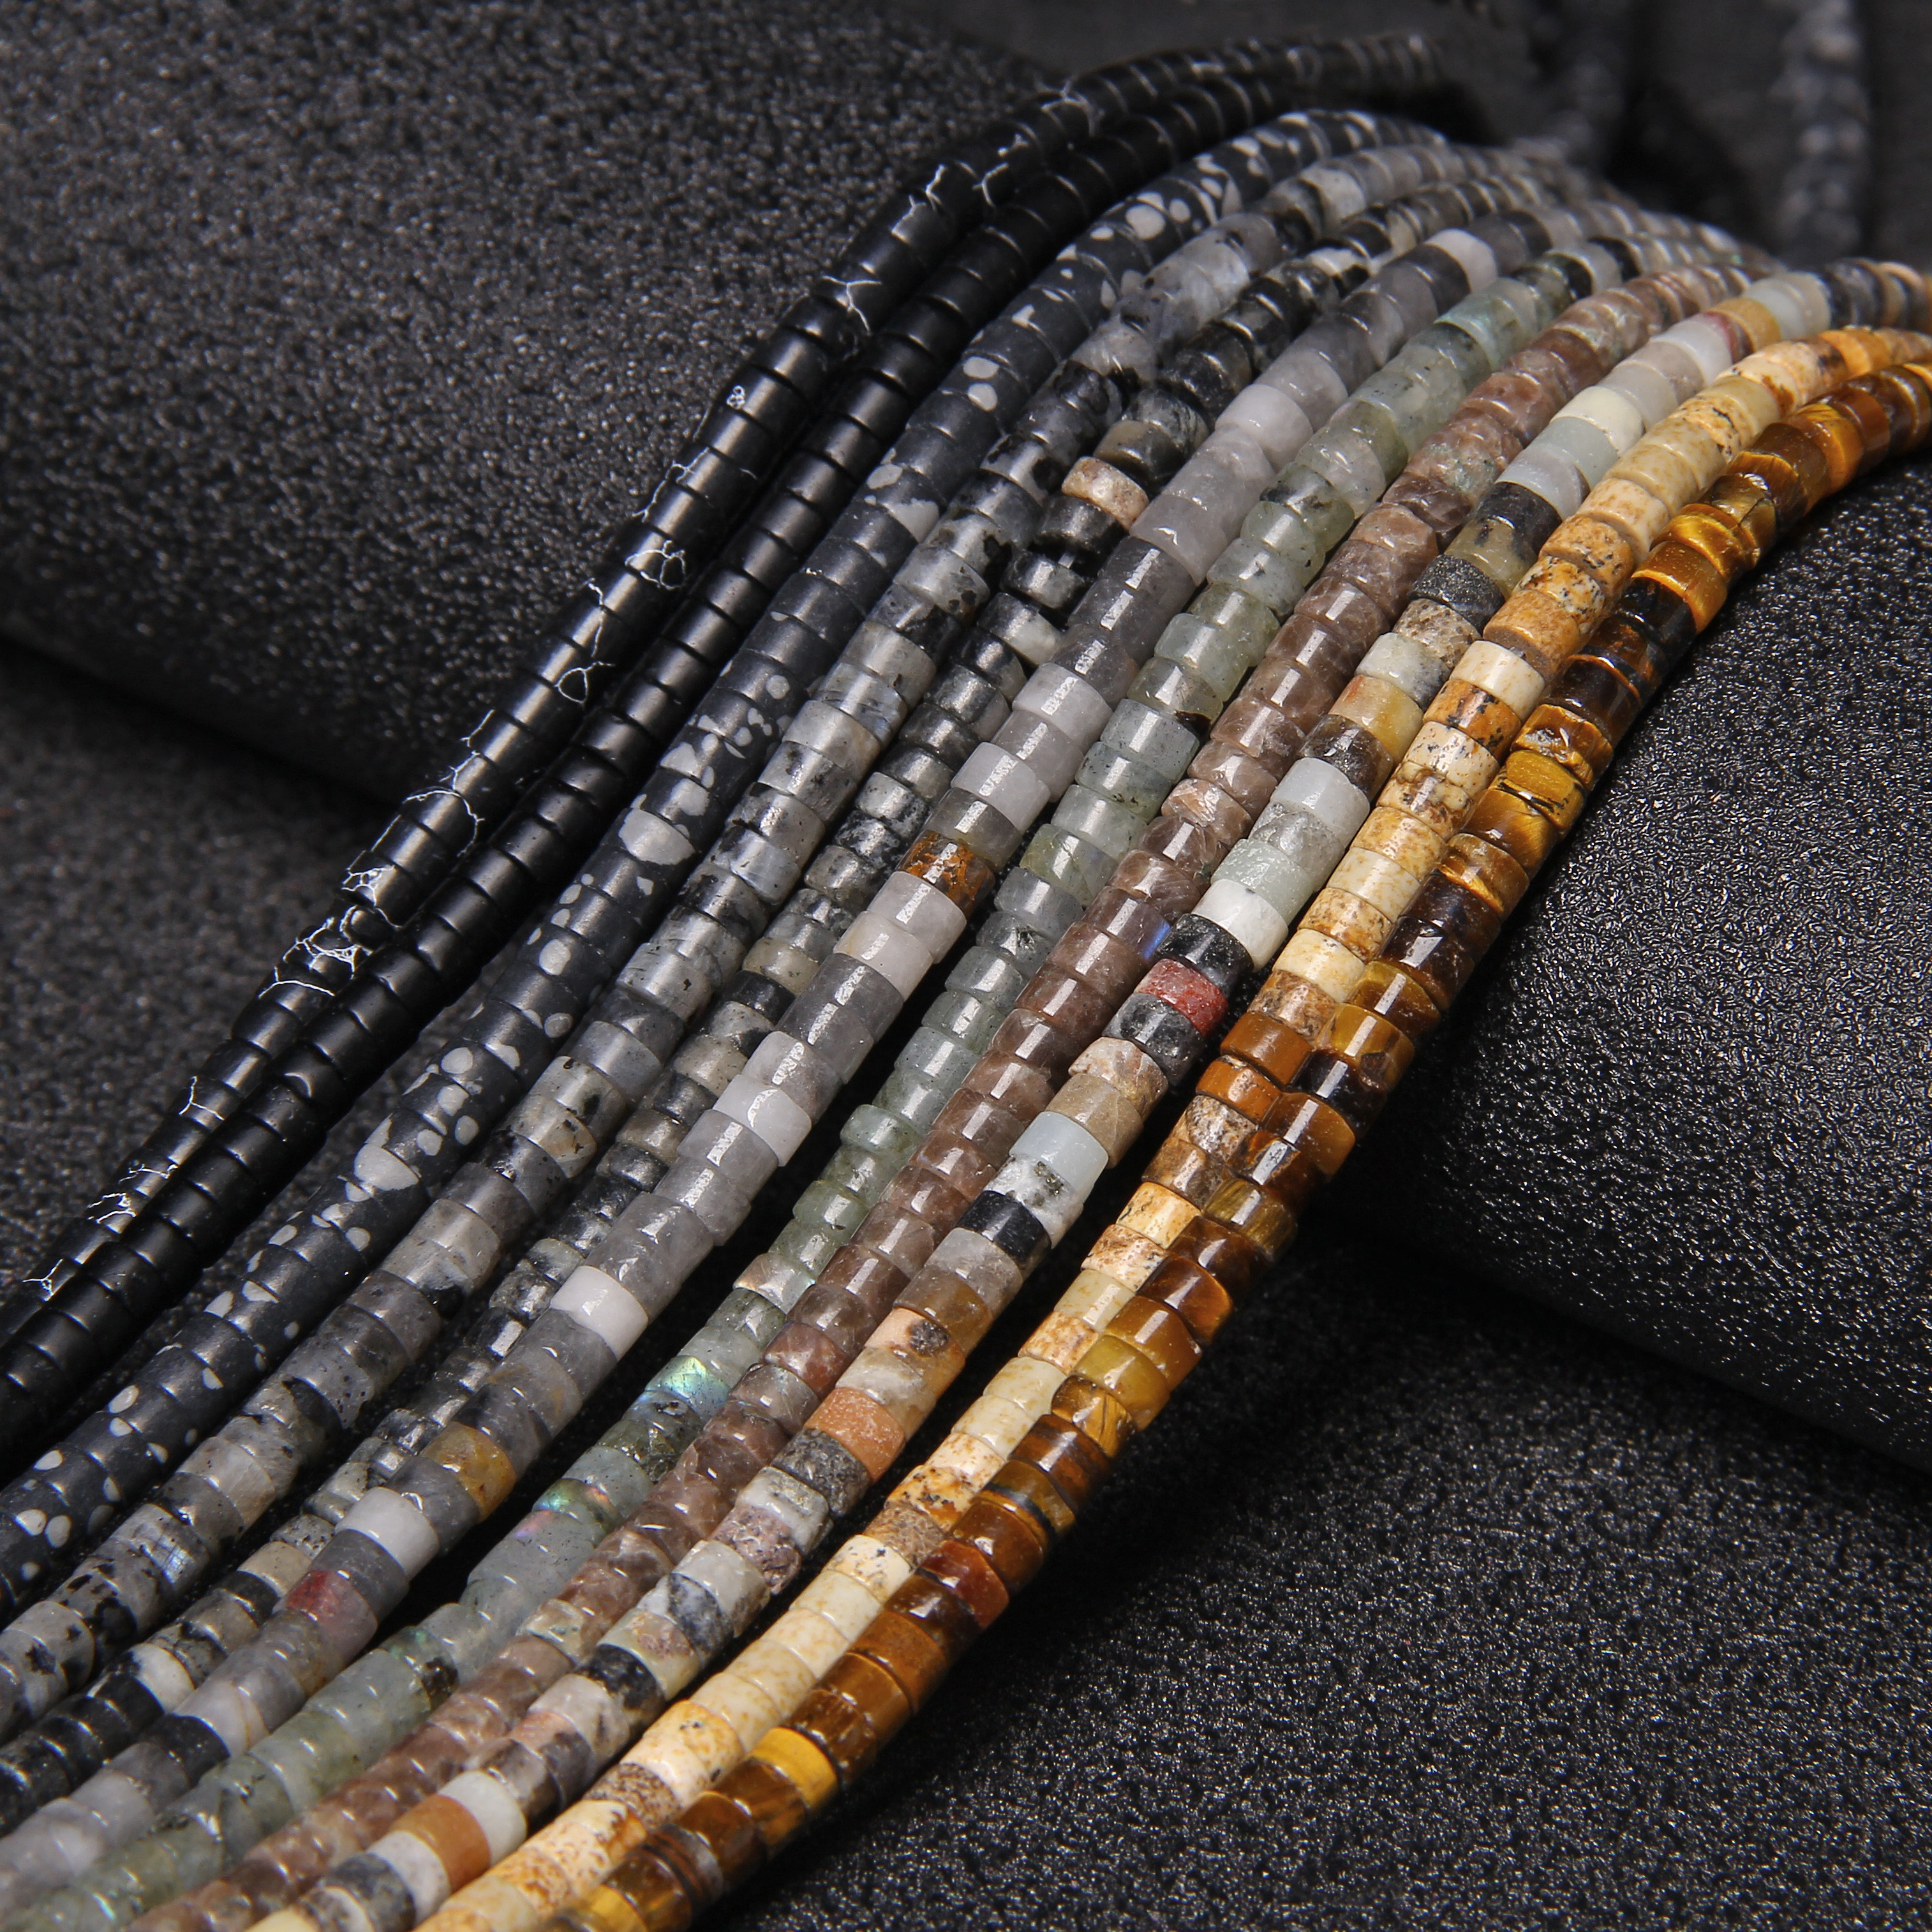 2x4mm High Quality Natural Labradorite Spacer Stone Beads Round Polished Tiger Eye Agat Loose Beads Fit Jewelry Making Supplies